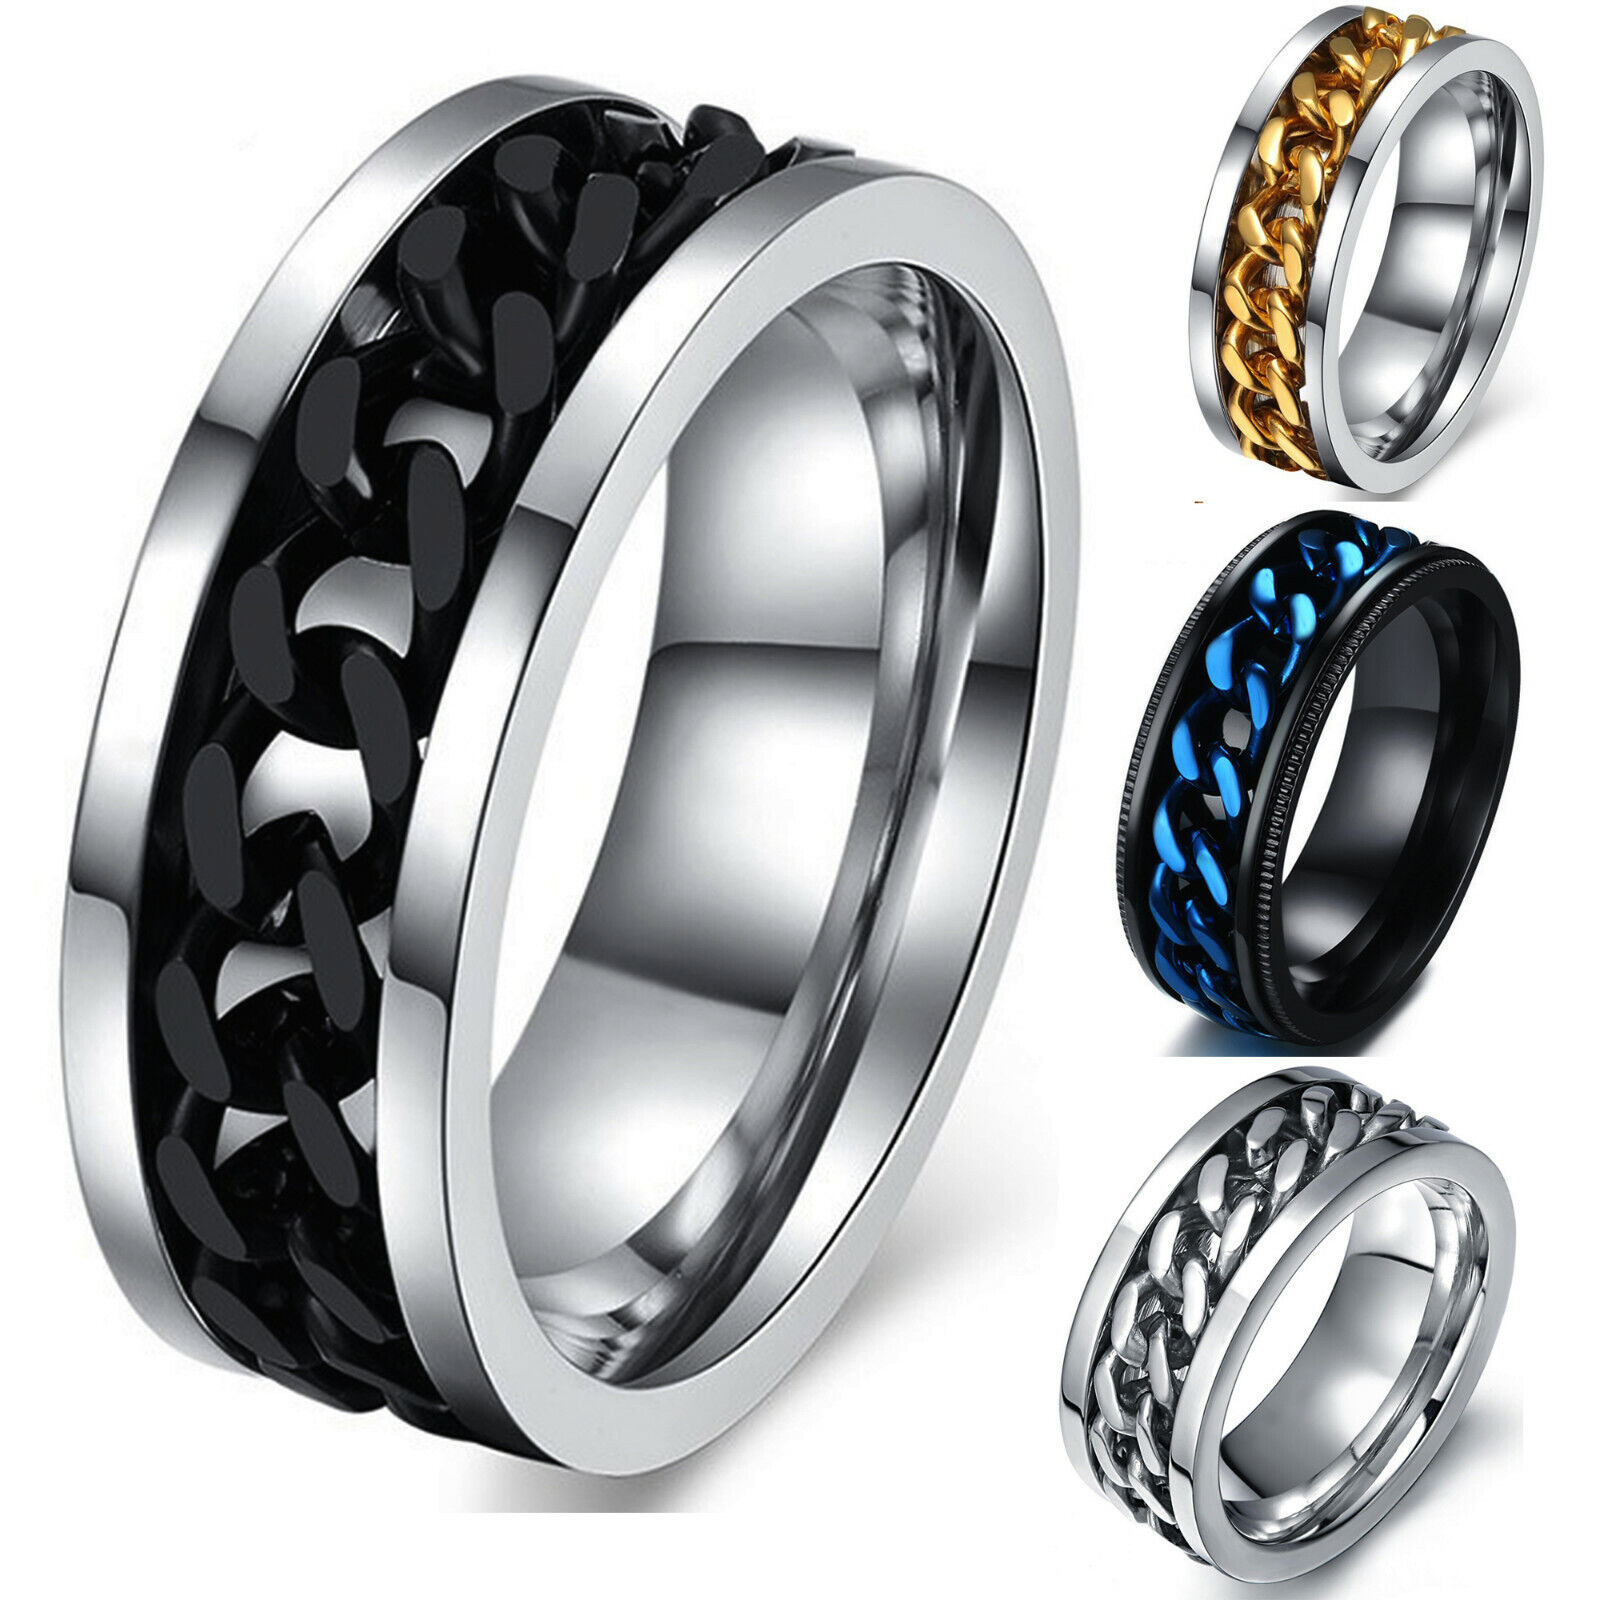 Men's Anxiety Spinner Ring Stainless Steel Curb Chain Wedding Band, Comfort Fit Jewelry & Watches